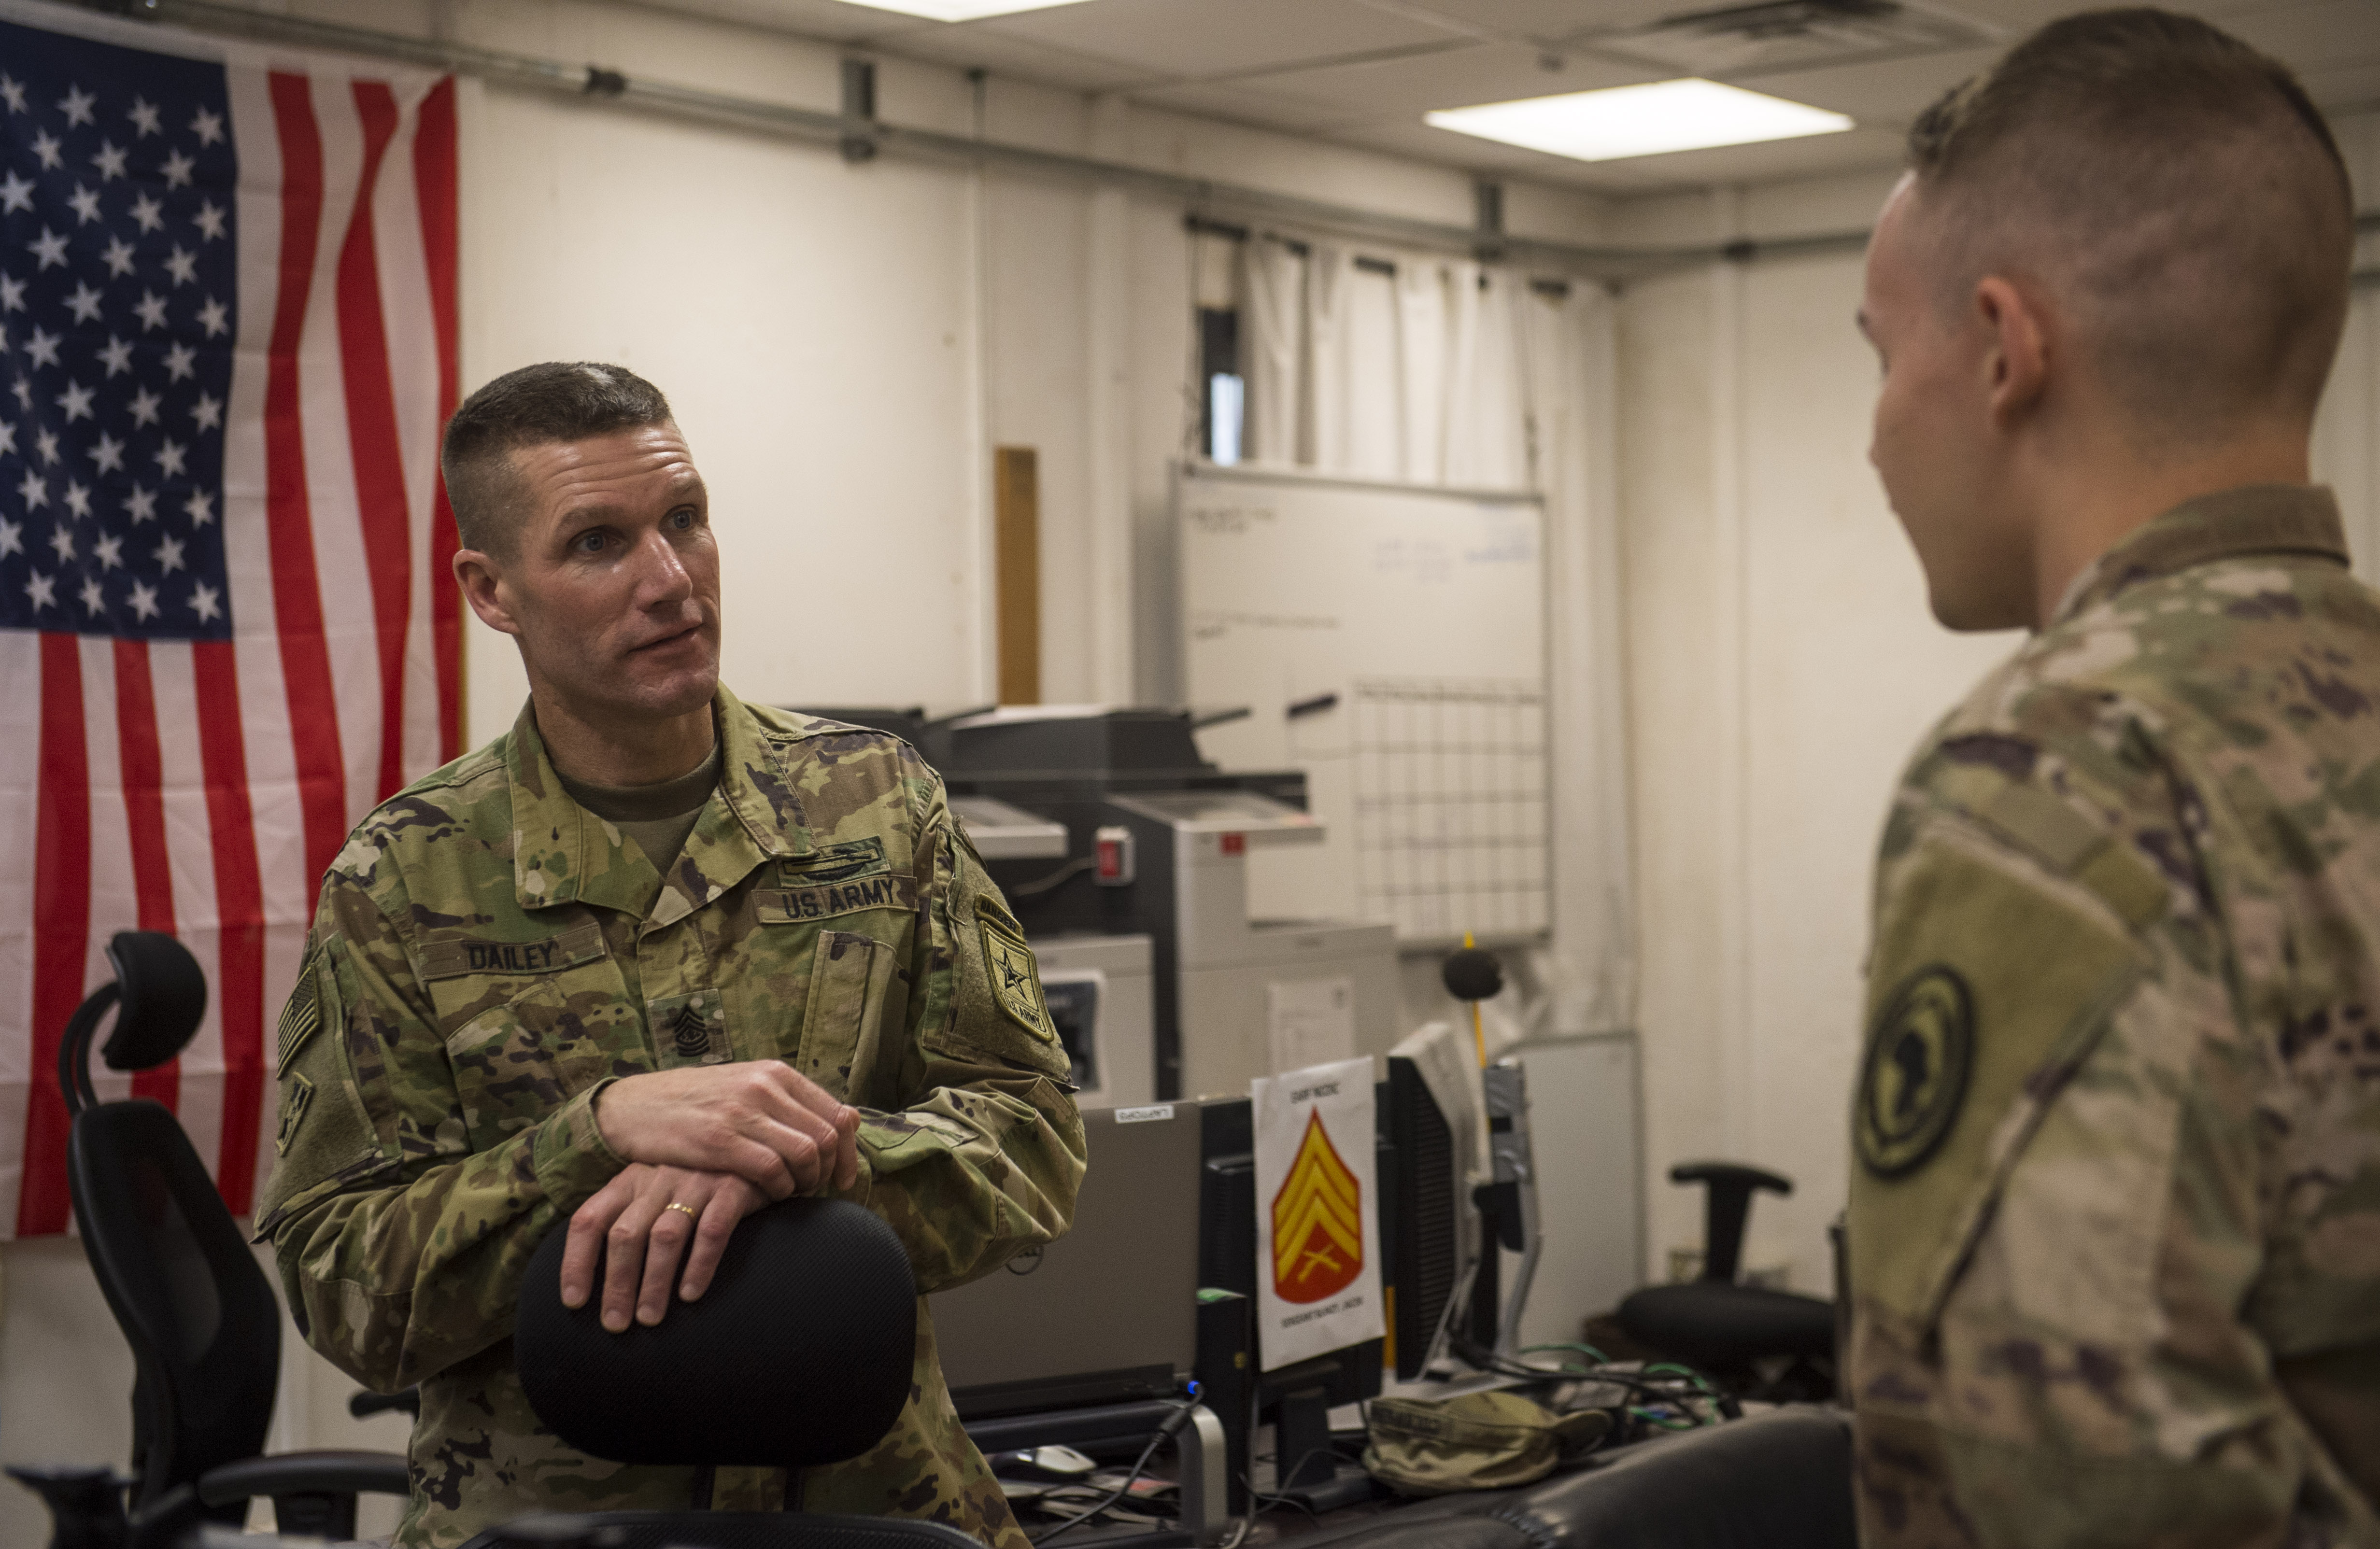 U.S. Sgt. Maj. of the Army Daniel Dailey visits speaks with a Soldier assigned to Combined Joint Task Force - Horn of Africa during his visit to Camp Lemonnier, Djibouti, Dec. 21, 2017. Camp Lemonnier was Dailey's last stop before returning to the United States as he visited with Soldiers and other service members deployed and away from their families during the holidays. (U.S. Air Force photo by Staff Sgt. Timothy Moore)